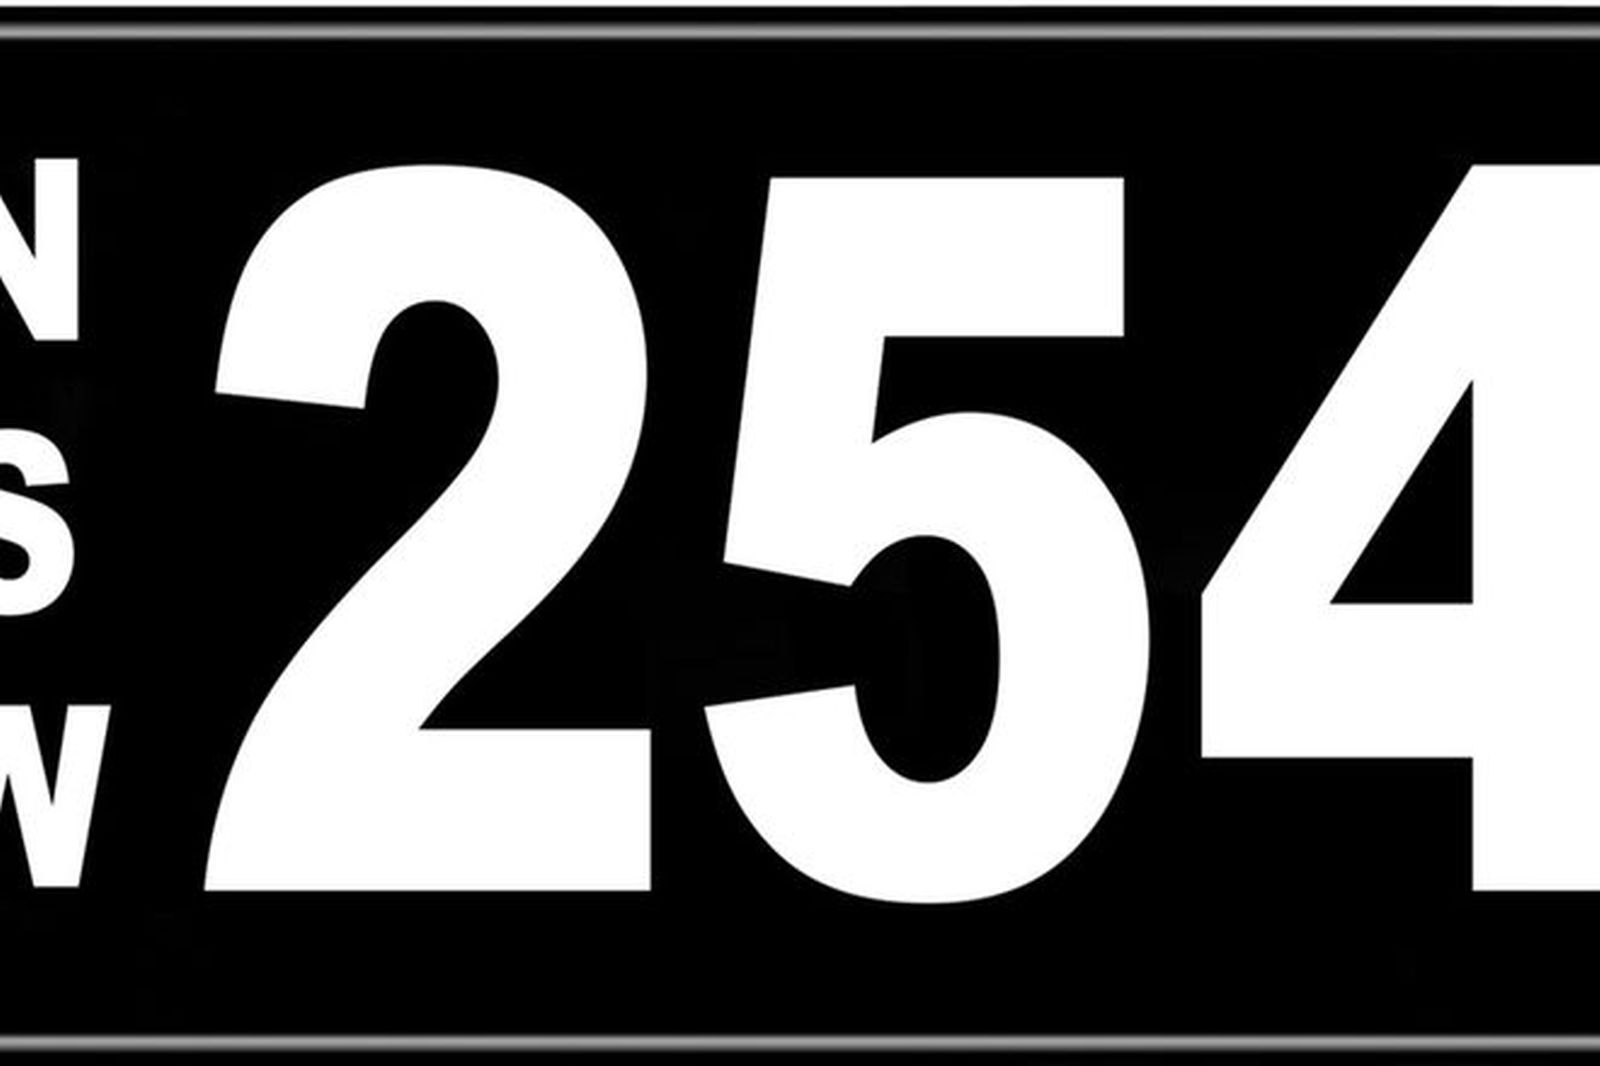 Number Plates - NSW Numerical Number Plates '254'